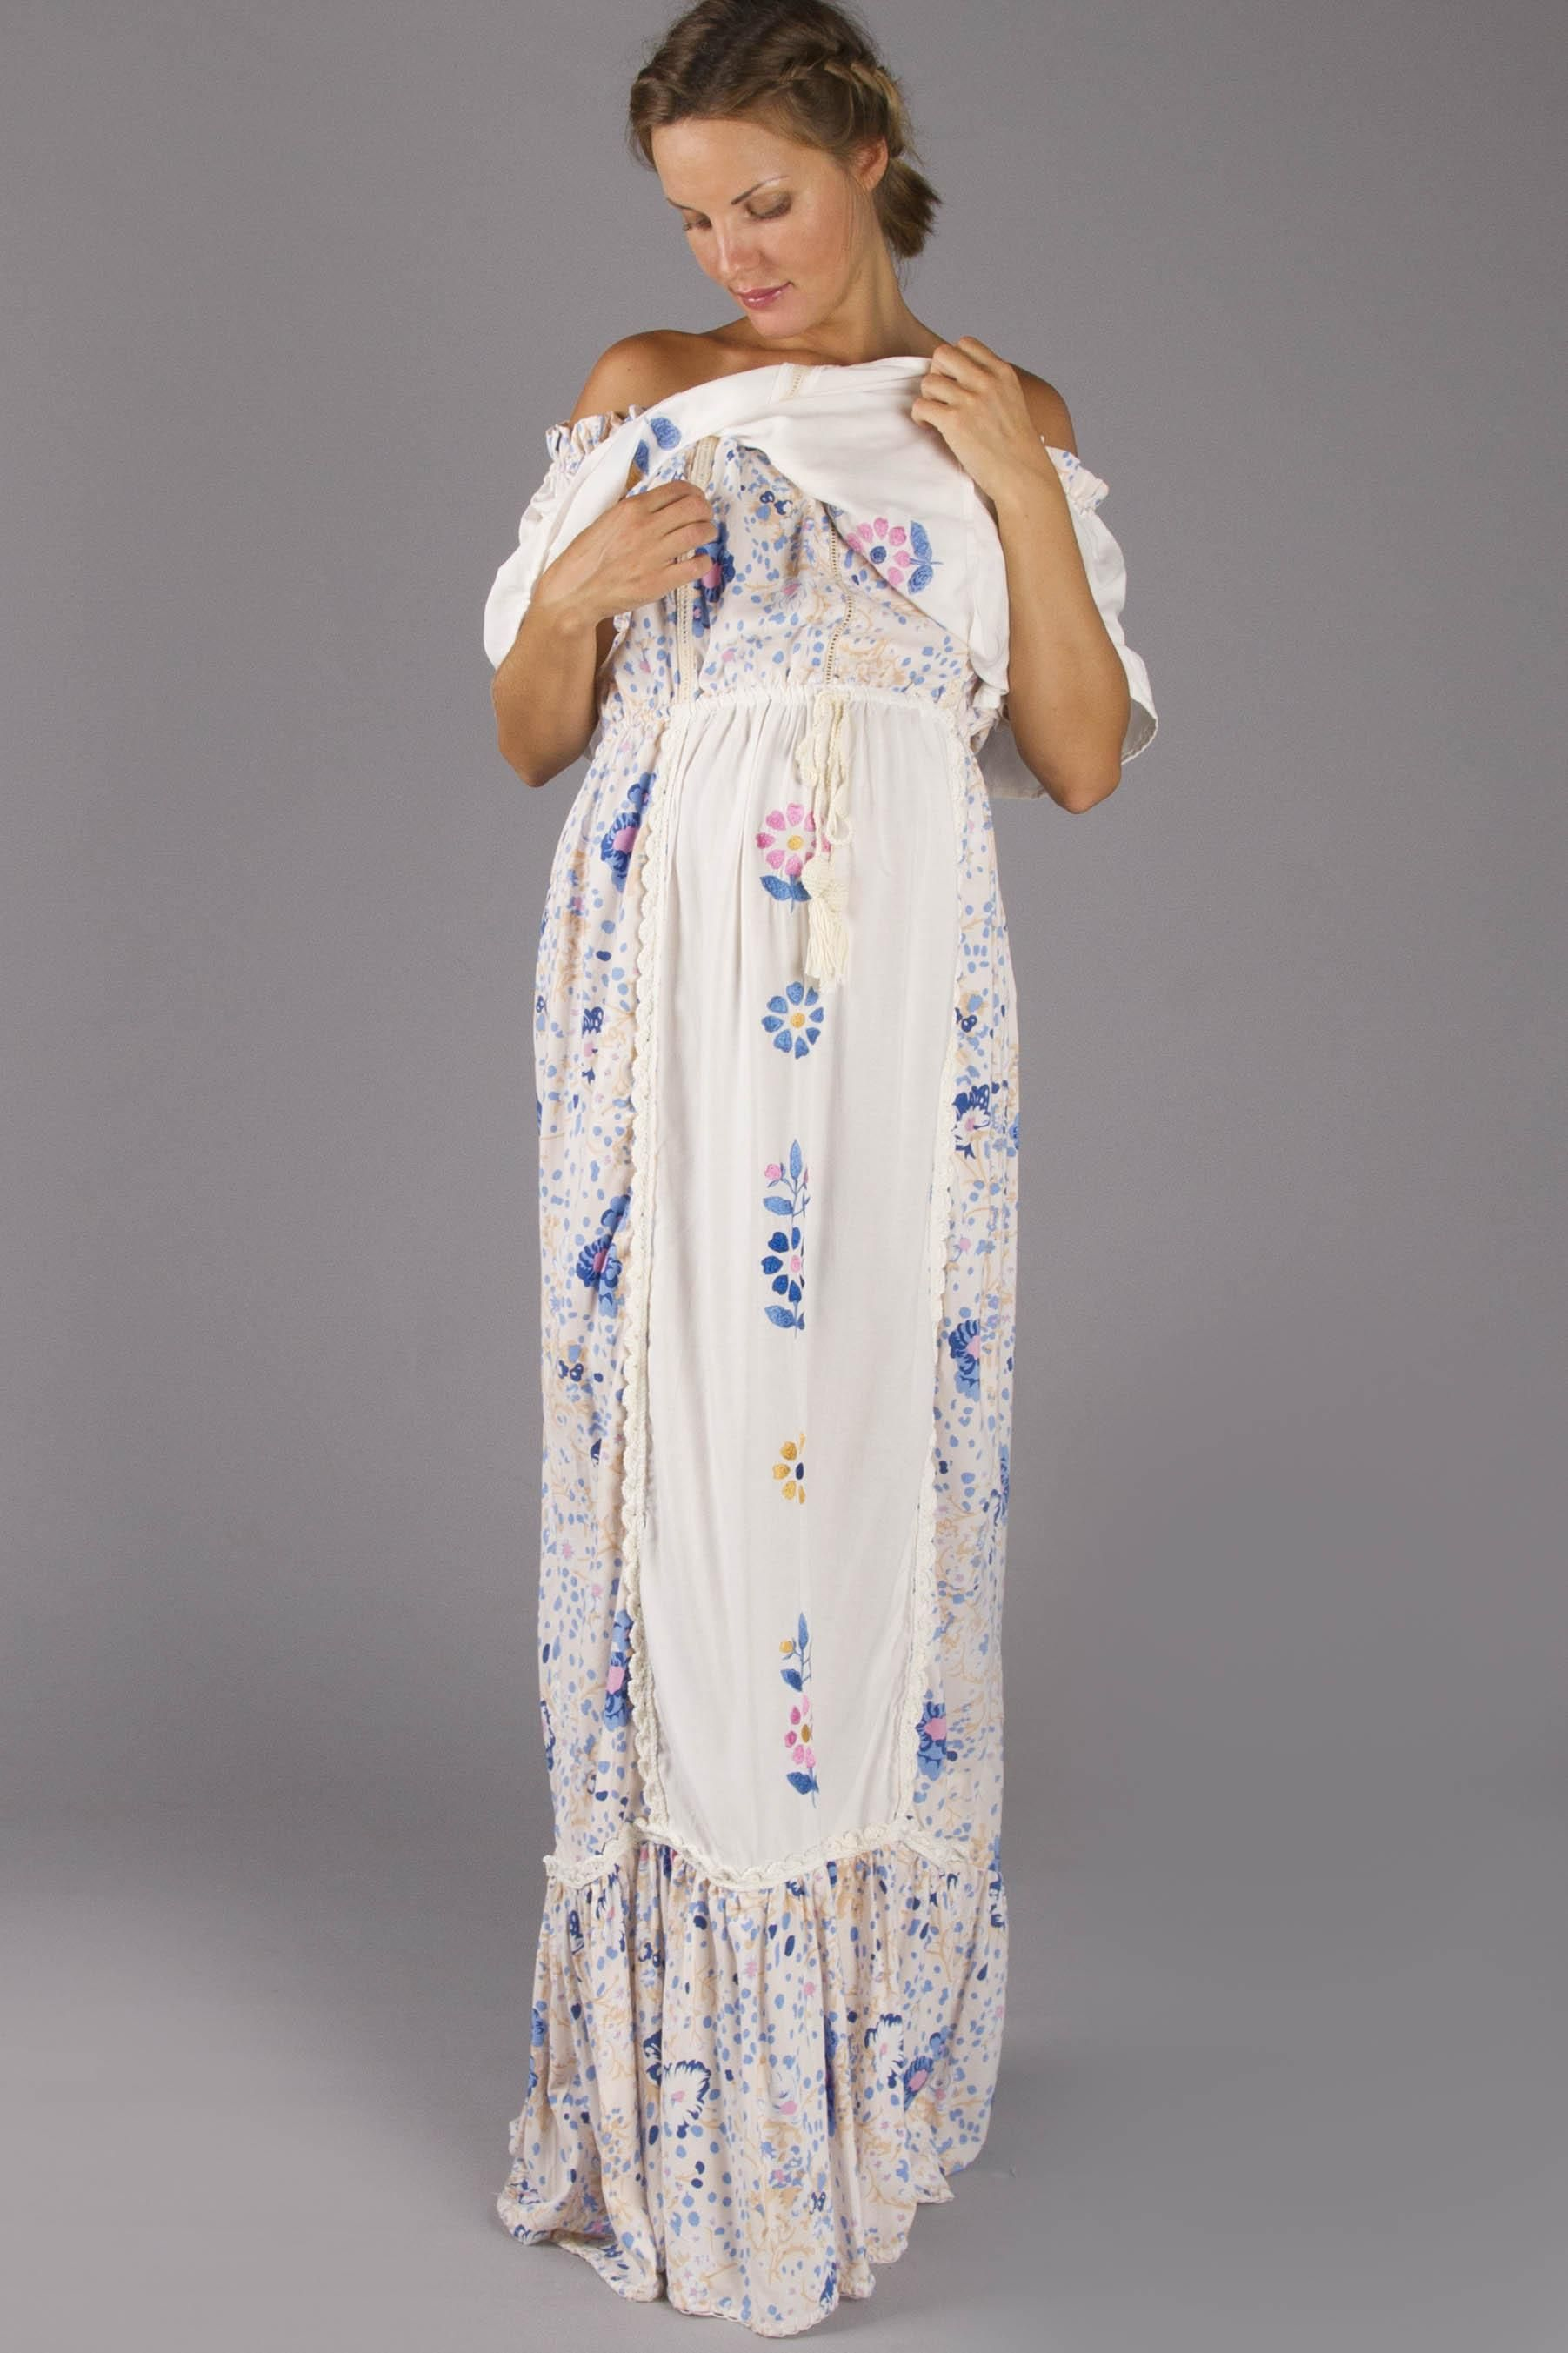 Seeker lover keeper nursing dress embroidered nursing maxi dress double layer nursing dress with hand embroidery and crochet details ombrellifo Images